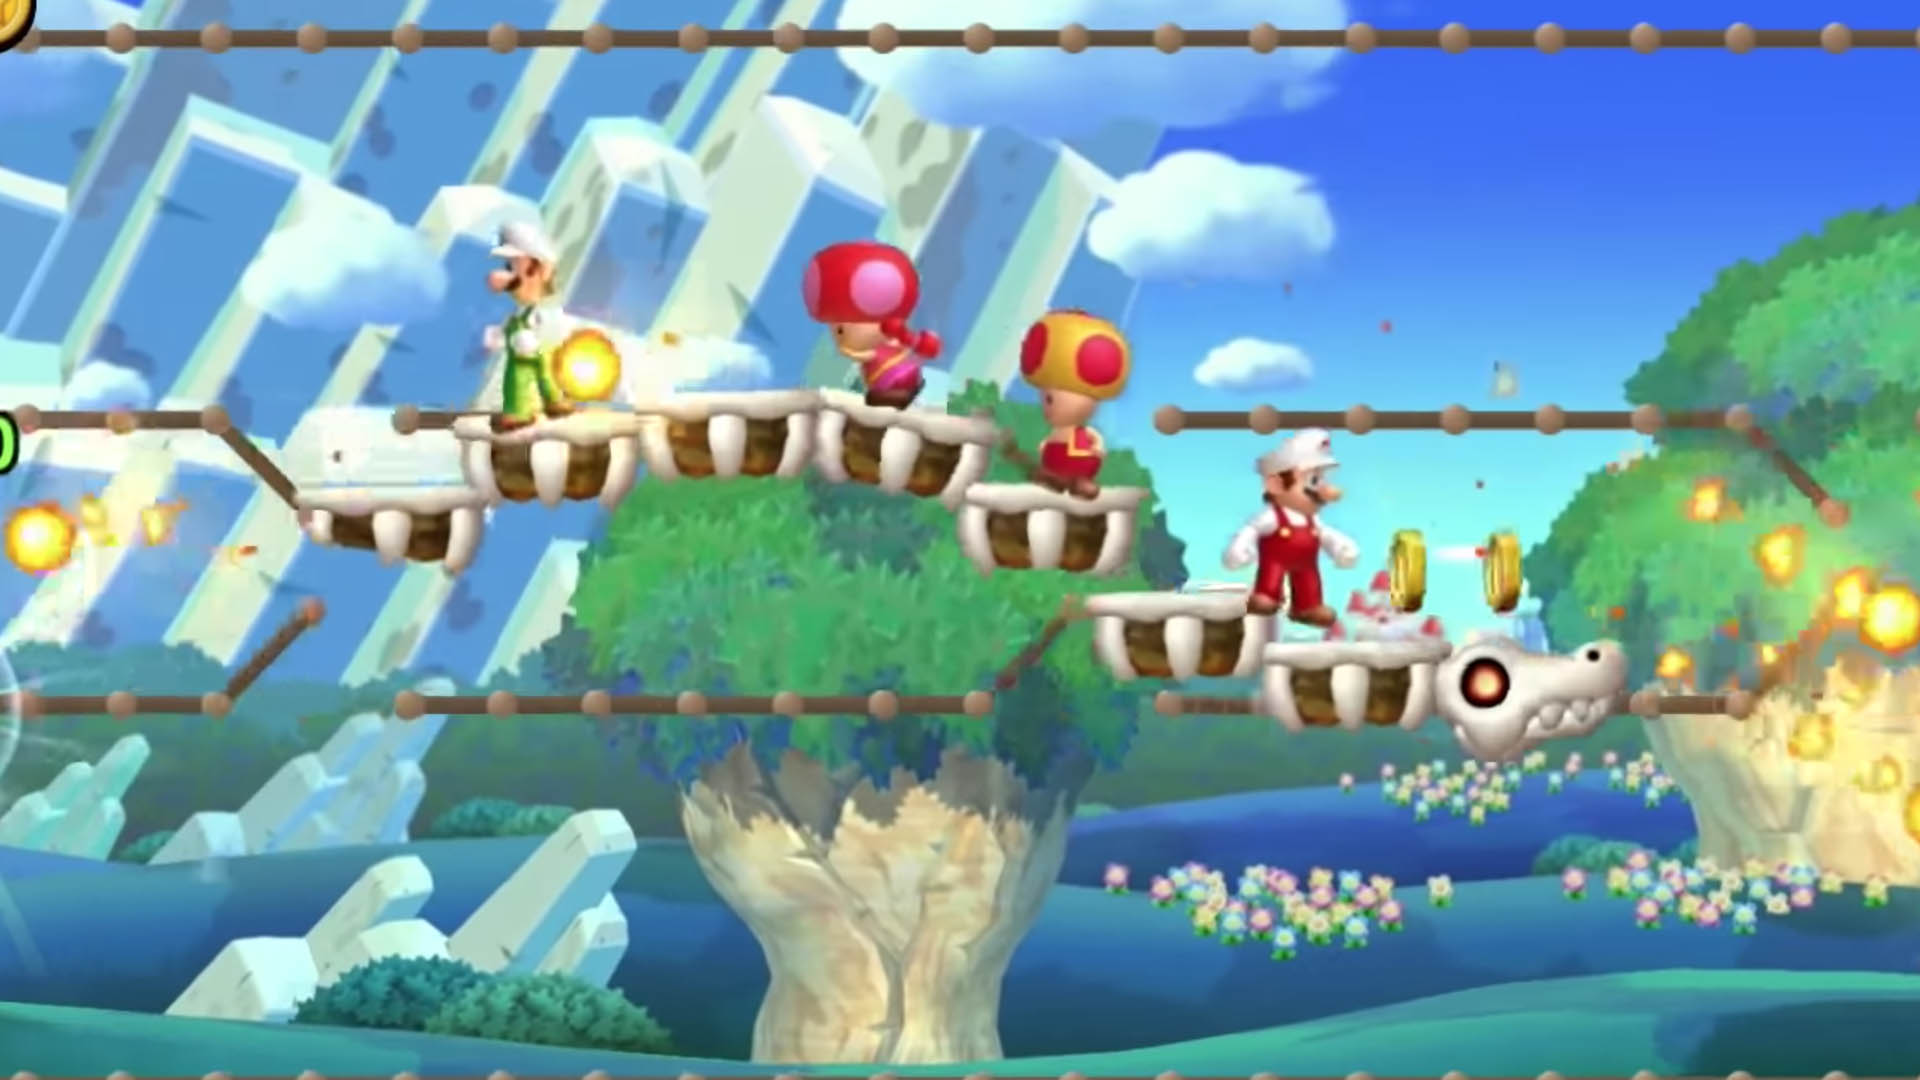 So Long Bowsette, Only Toadette Can Wear the Super Crown